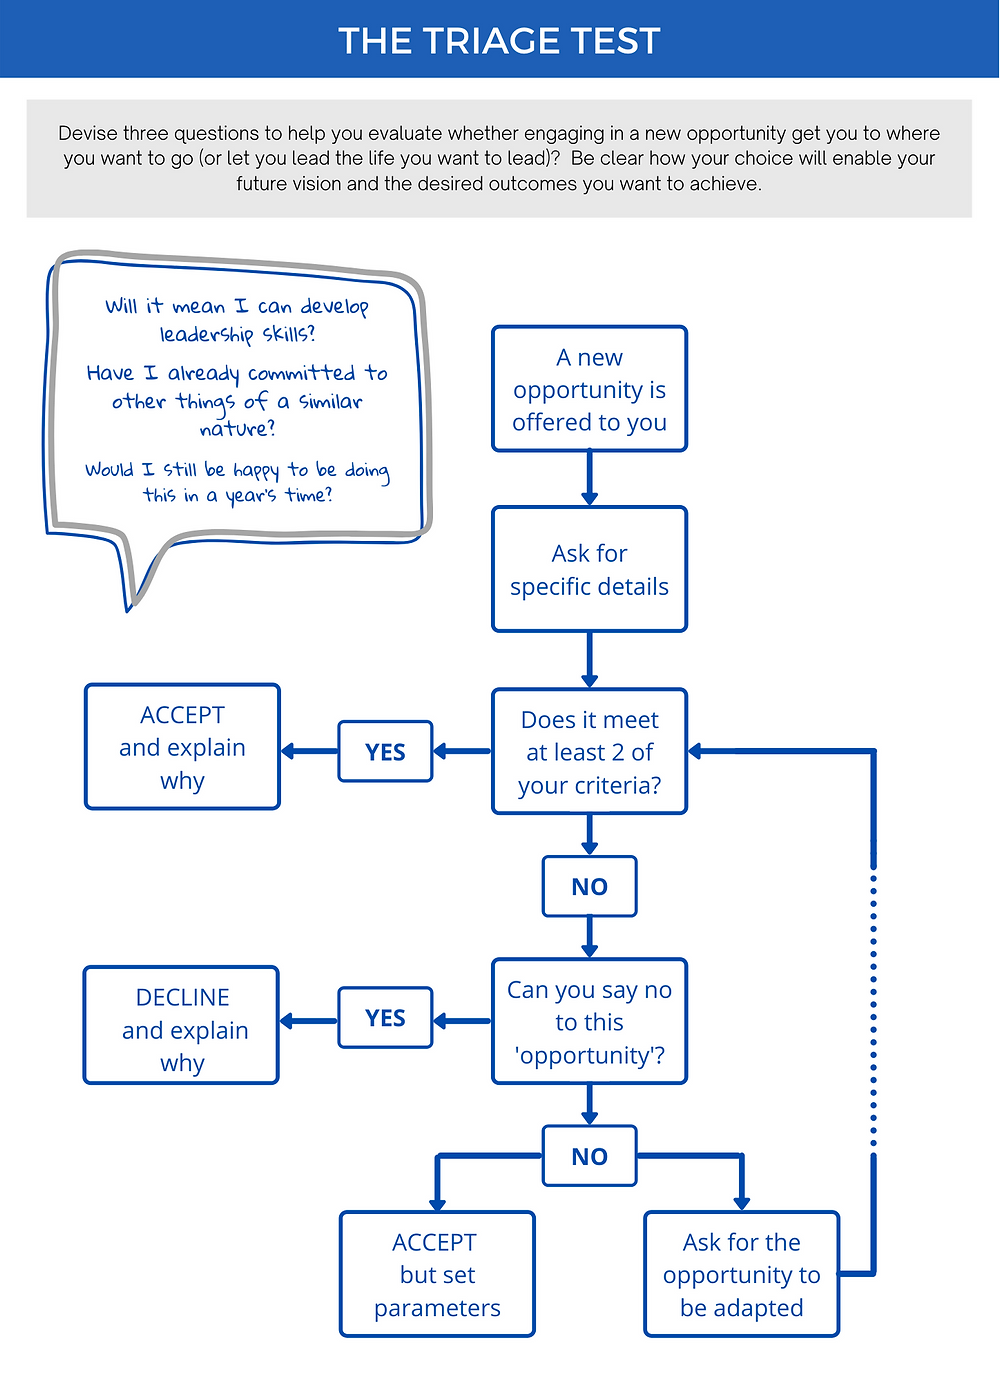 A flow chart showing the steps of the triage test